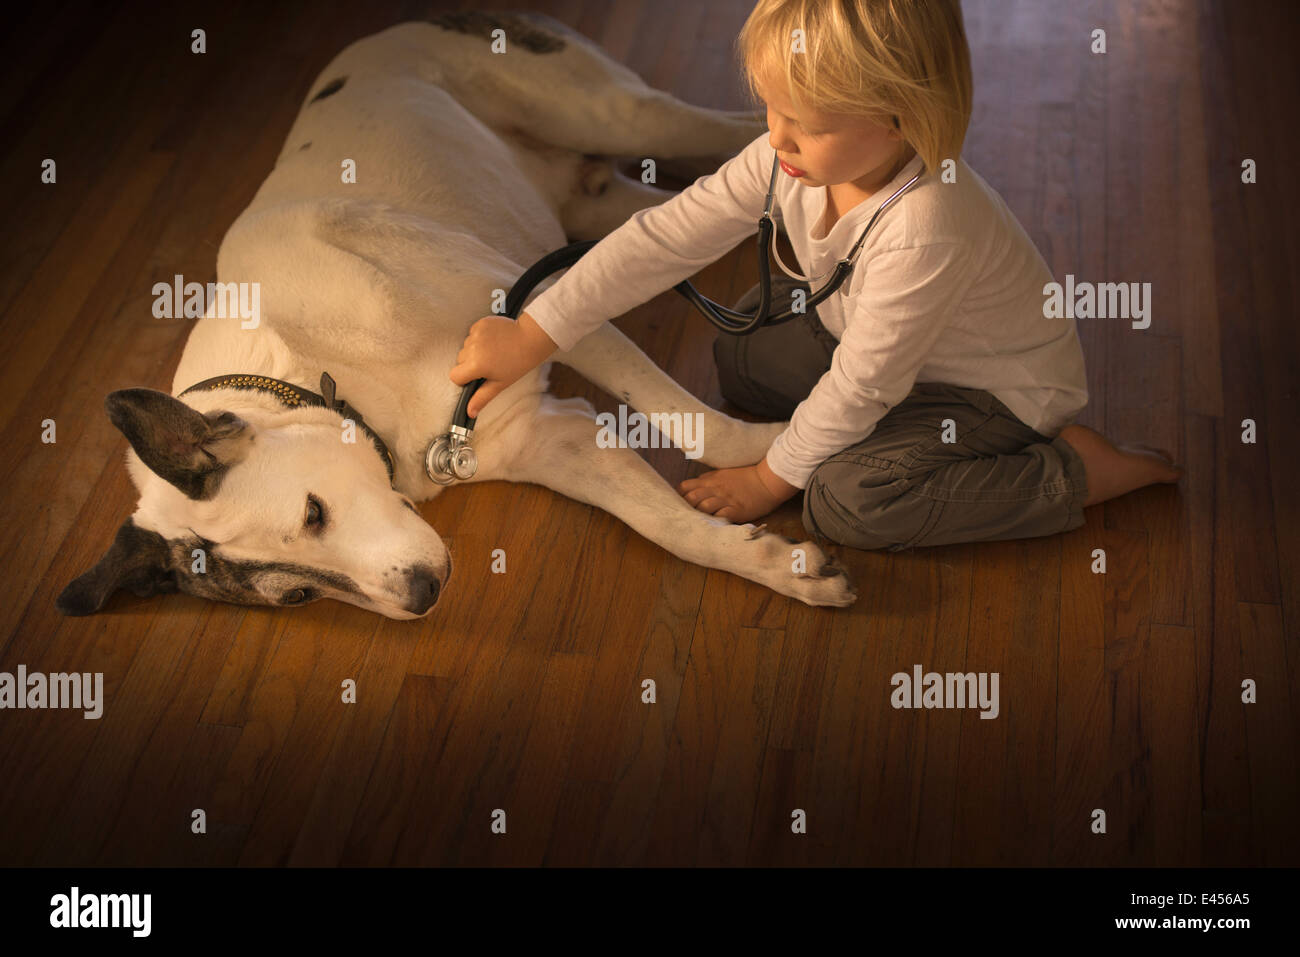 Three year old boy monitoring dog with stethoscope at home - Stock Image